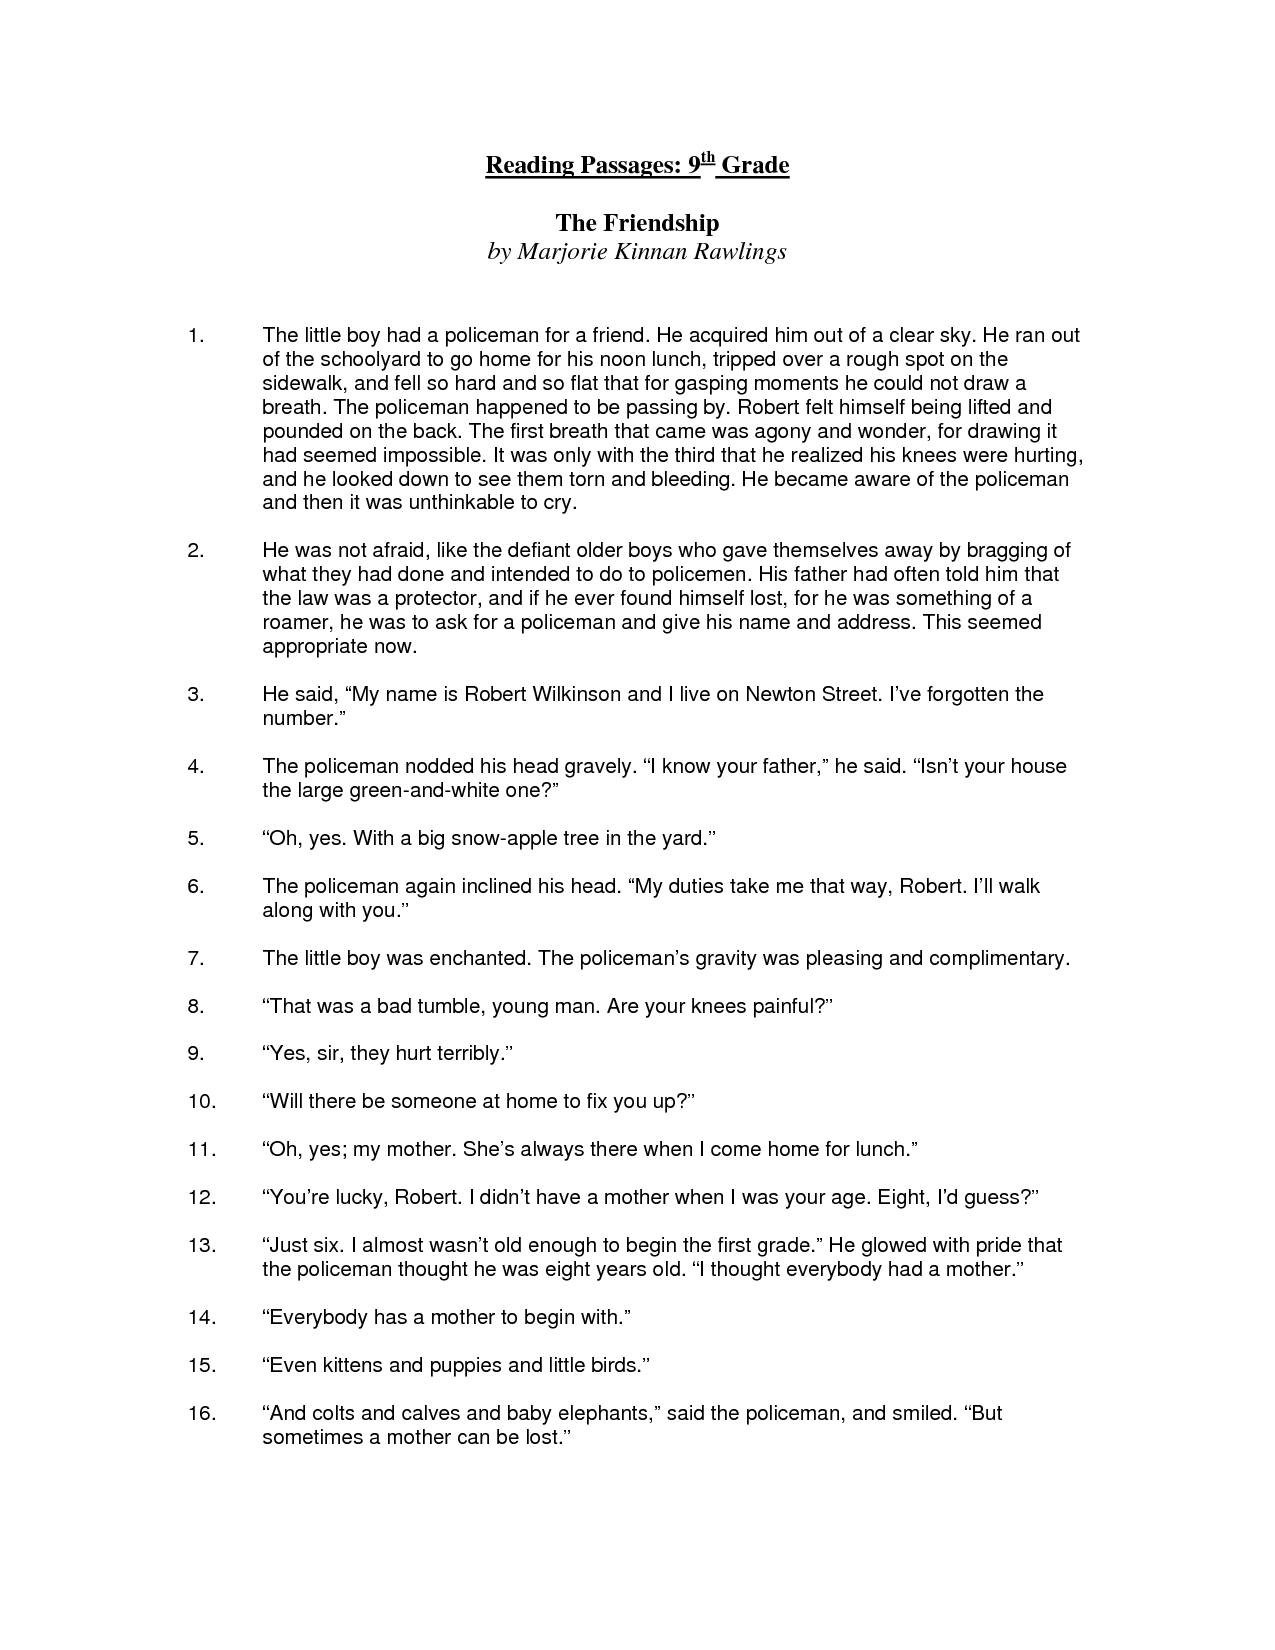 worksheet 6th Grade Reading Comprehension Worksheets Free 6th grade reading comprehension sheets sixth 4 best images of six worksheets free printable grade